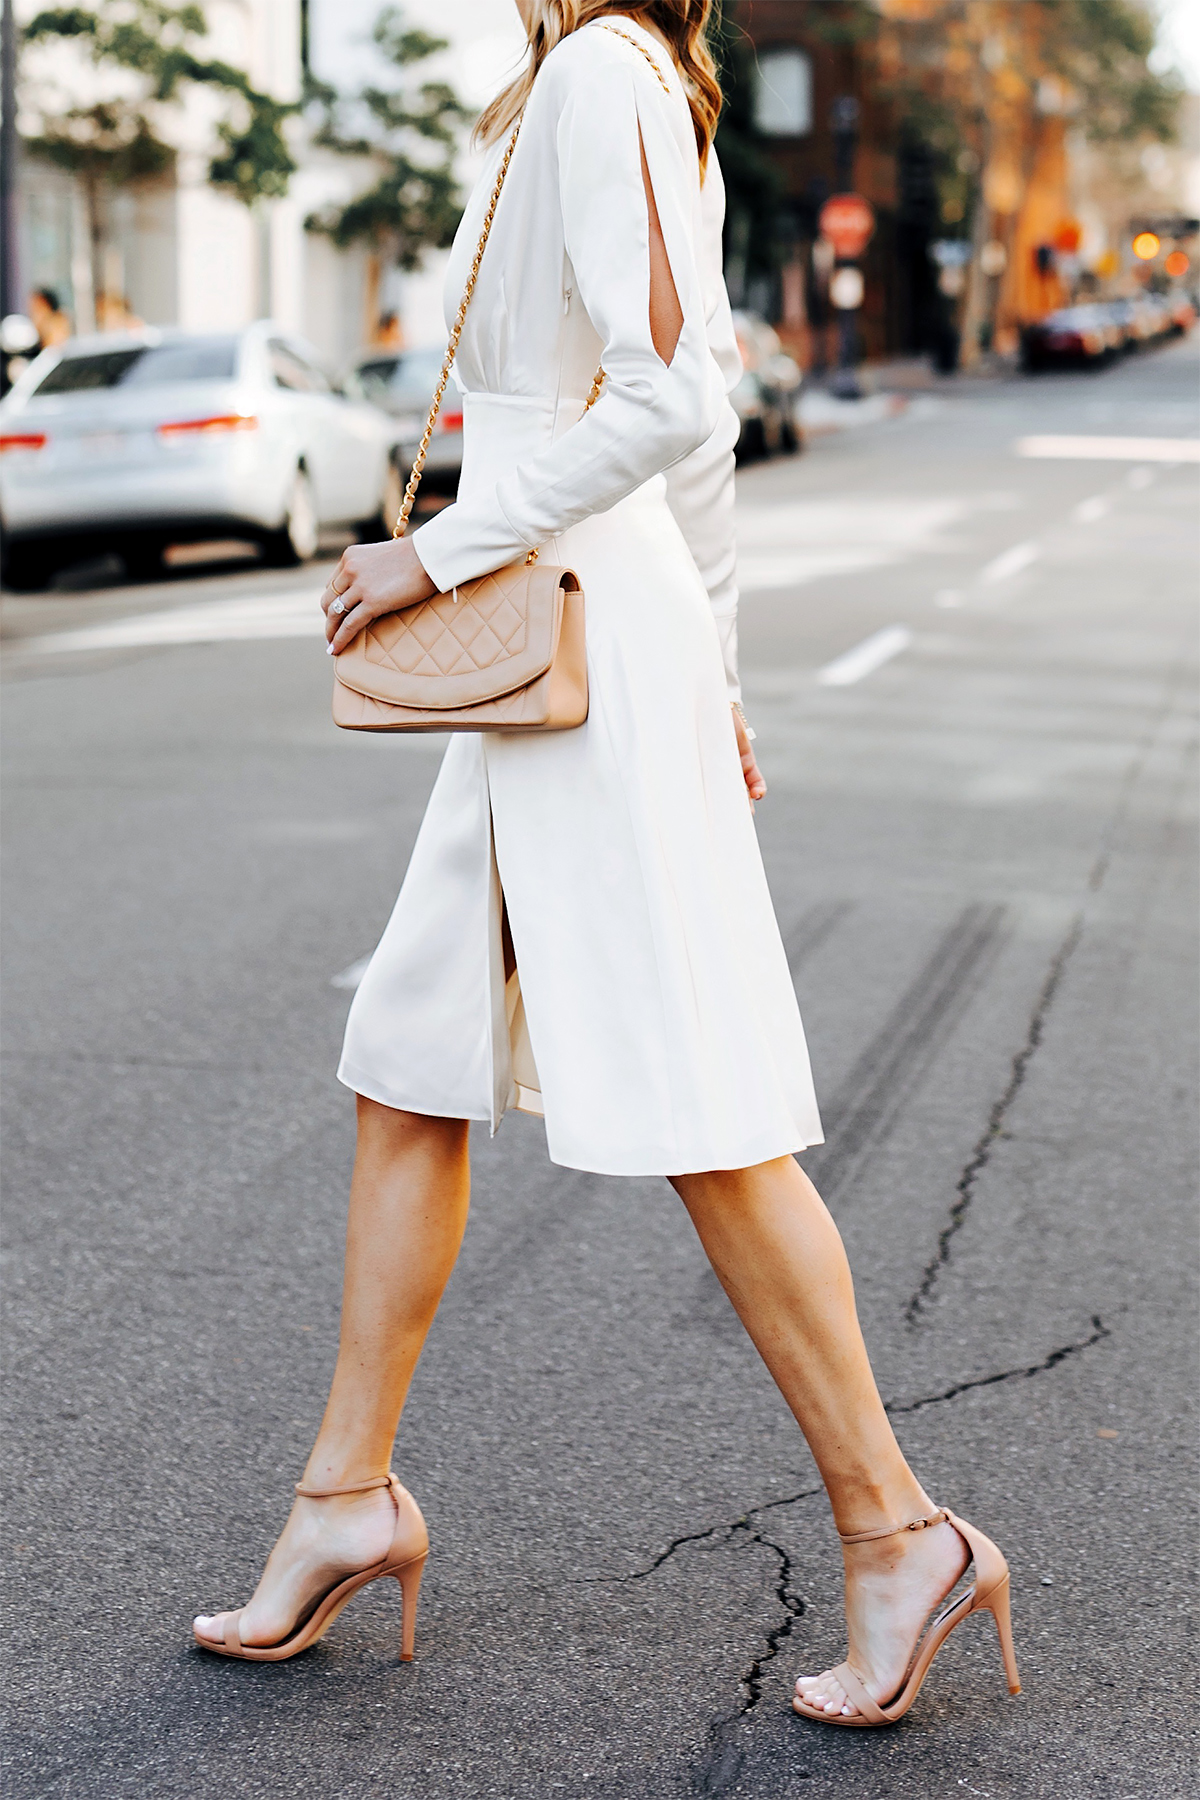 Woman Wearing Tommy Hilfiger White Wrap Dress Chanel Beige Diana Handbag Nude Ankle Strap Heeled Sandals Fashion Jackson San Diego Fashion Blogger Street Style